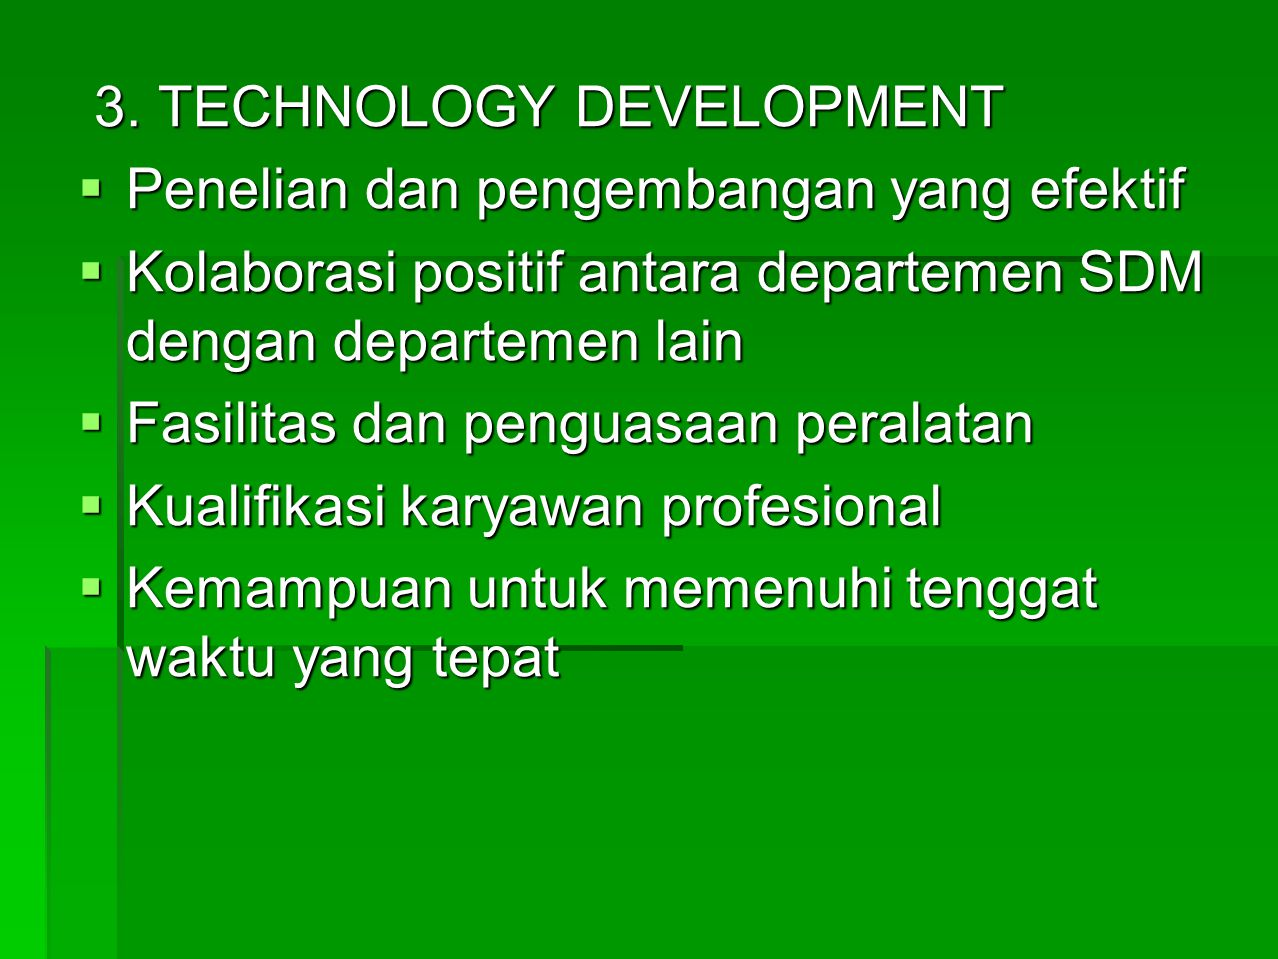 3. TECHNOLOGY DEVELOPMENT